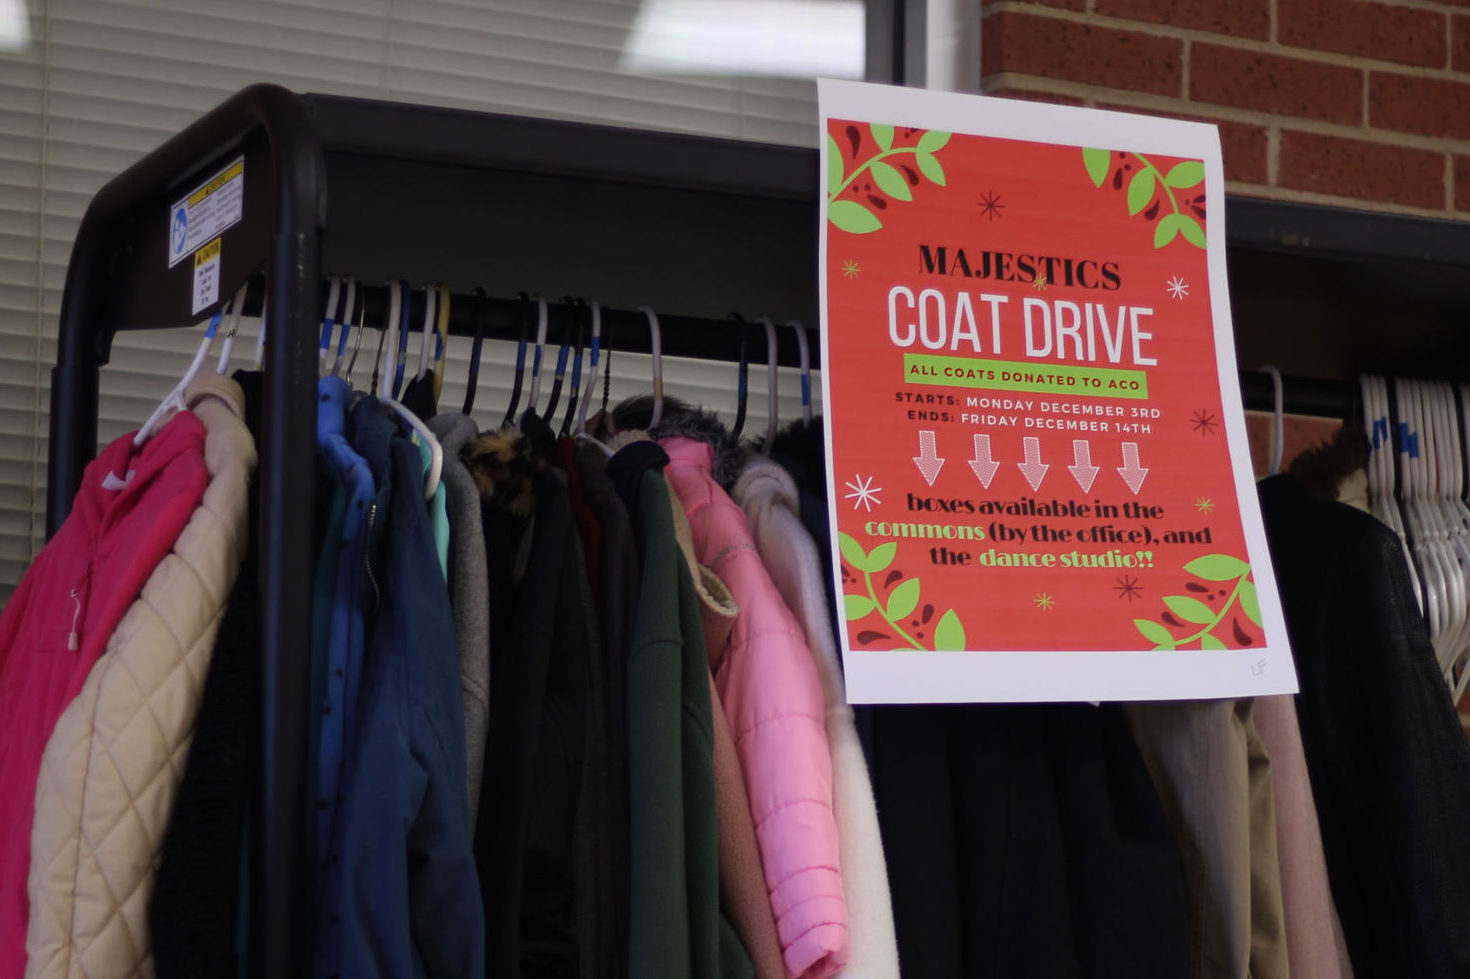 The coat drive will end Friday, Dec. 14.